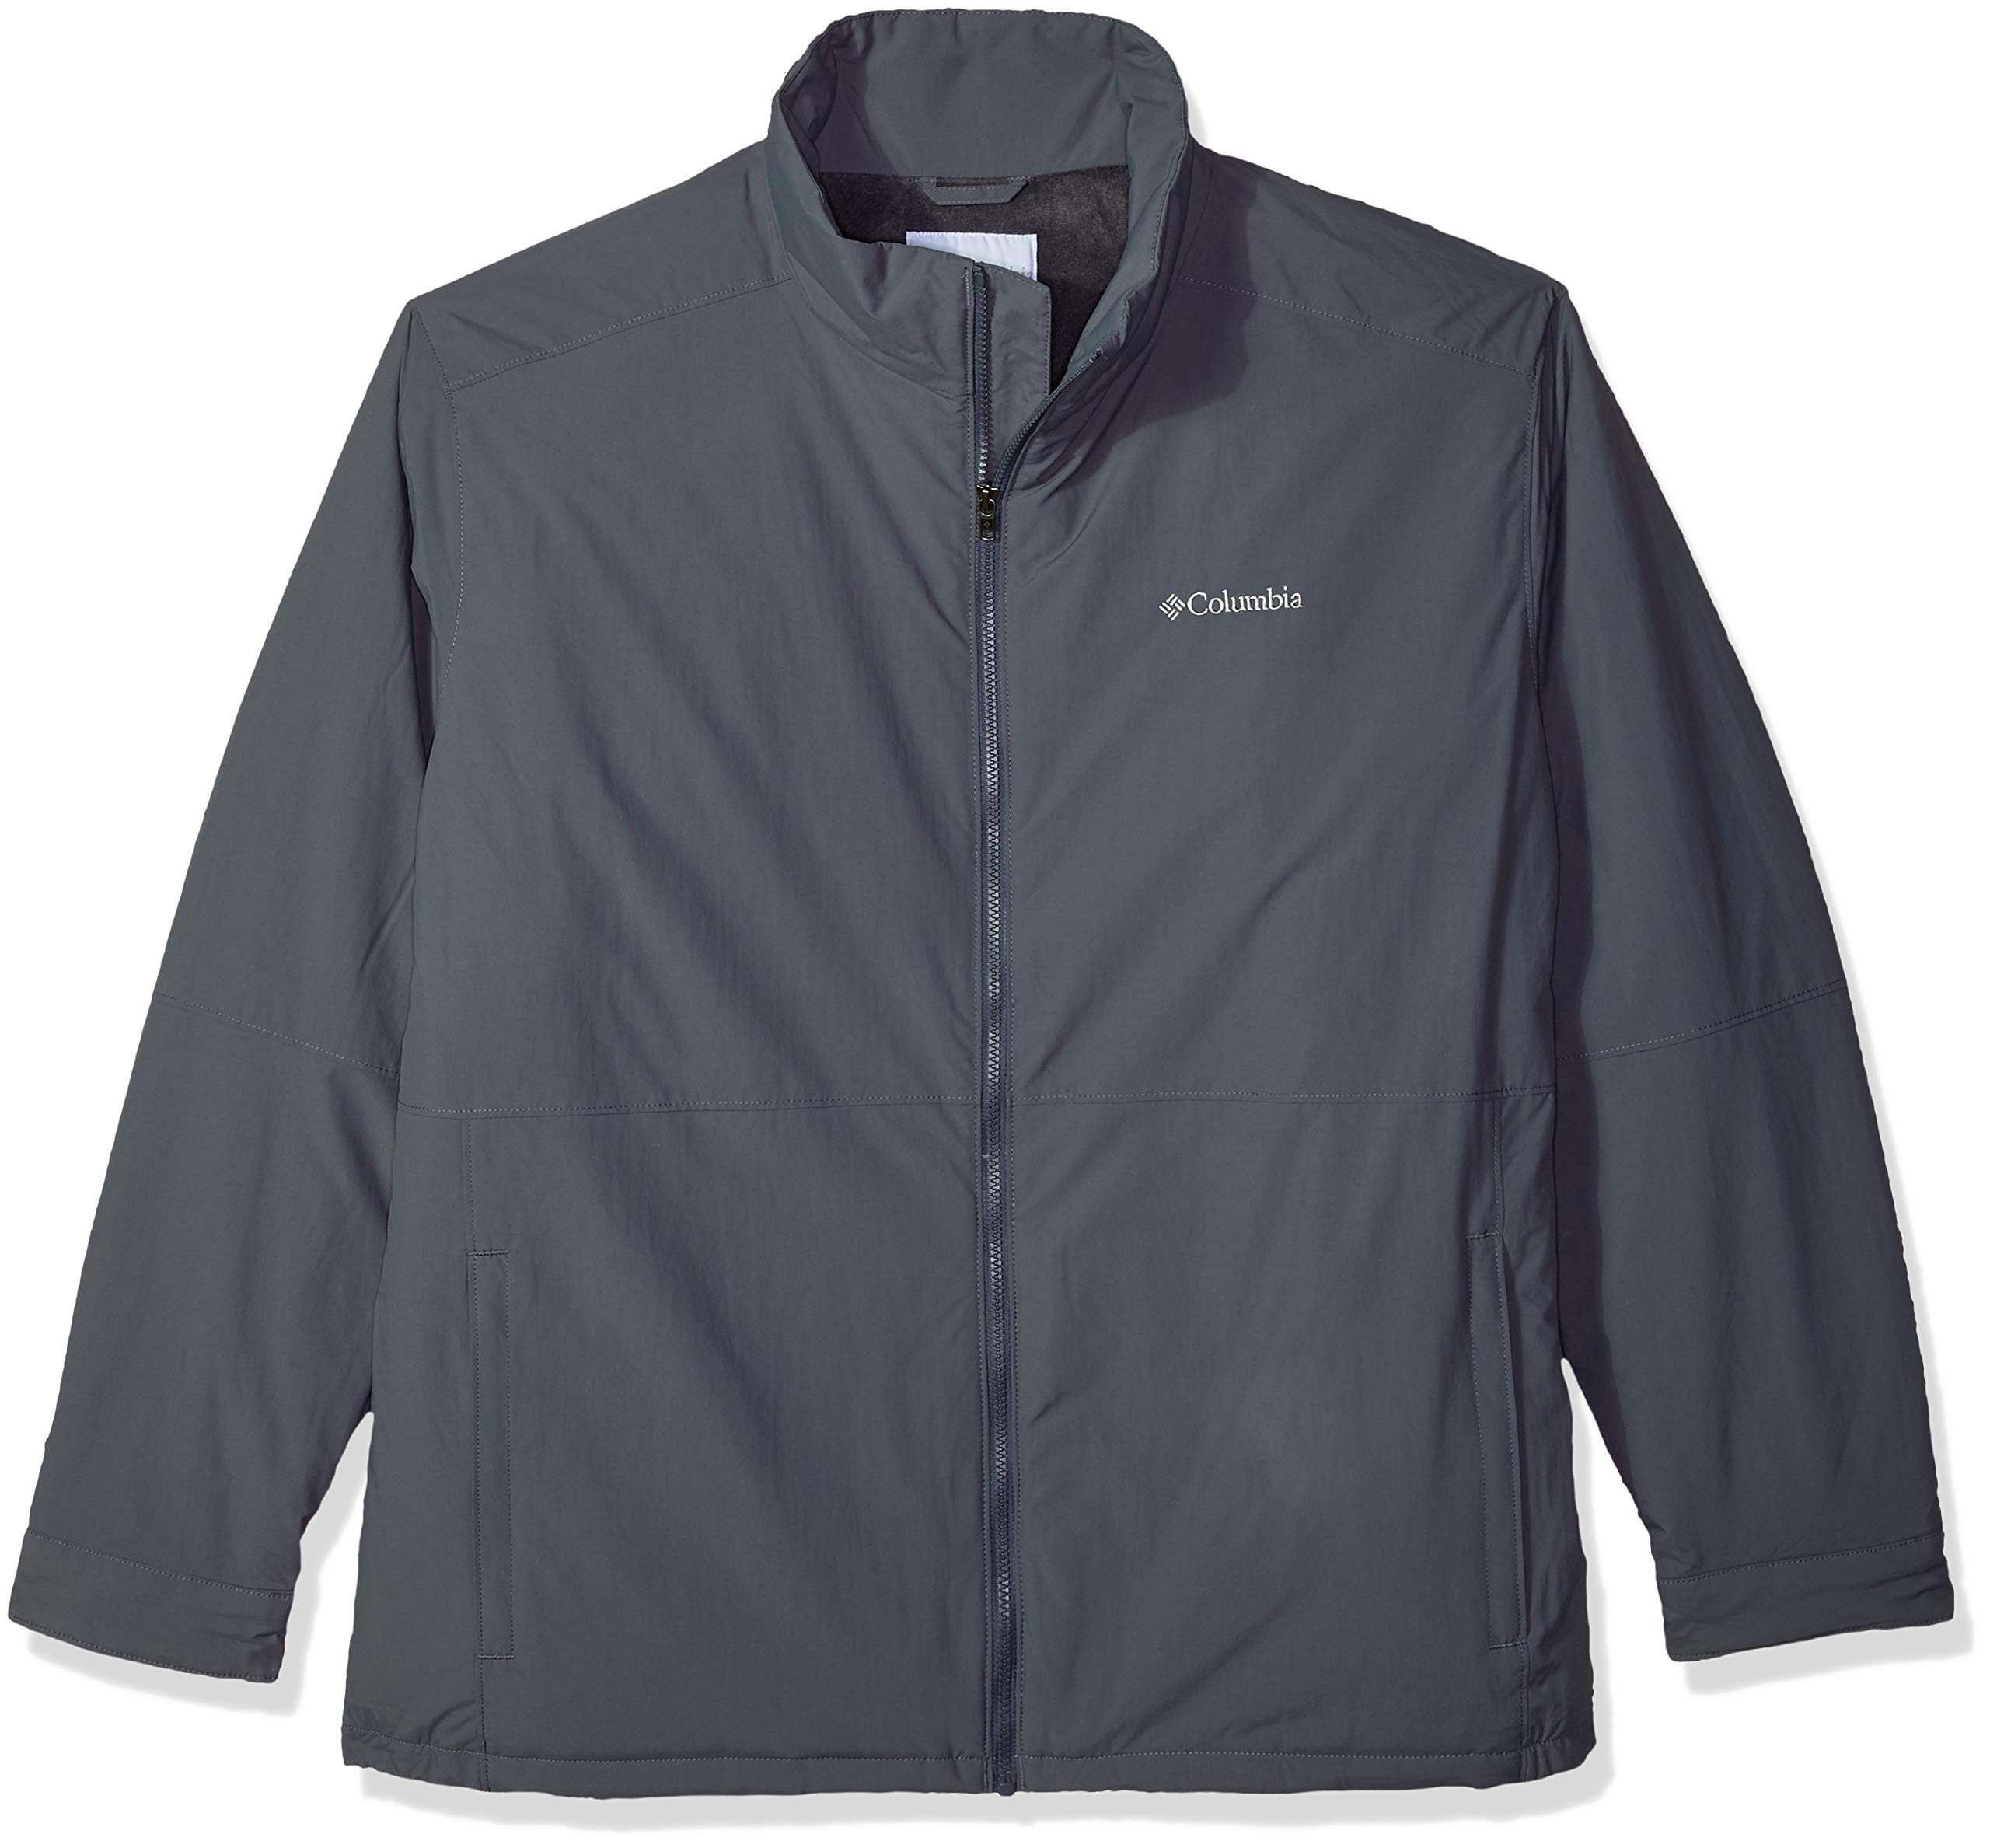 Columbia Men's Northern Bound Jacket, Graphite, M by Columbia